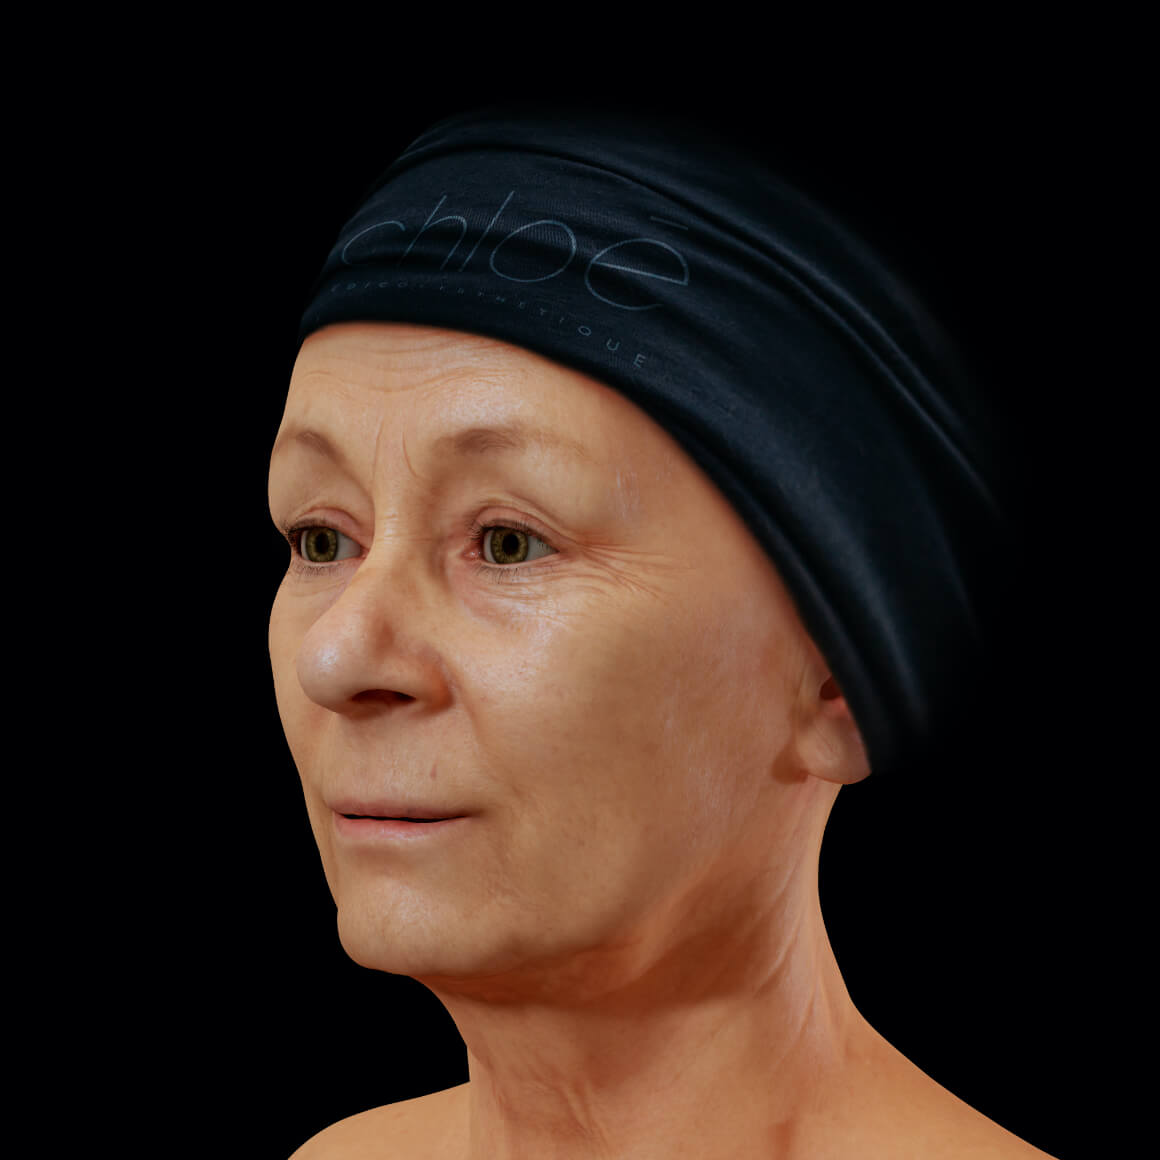 Woman, patient at Clinique Chloé, positioned at an angle, showing fine lines and wrinkles on the face